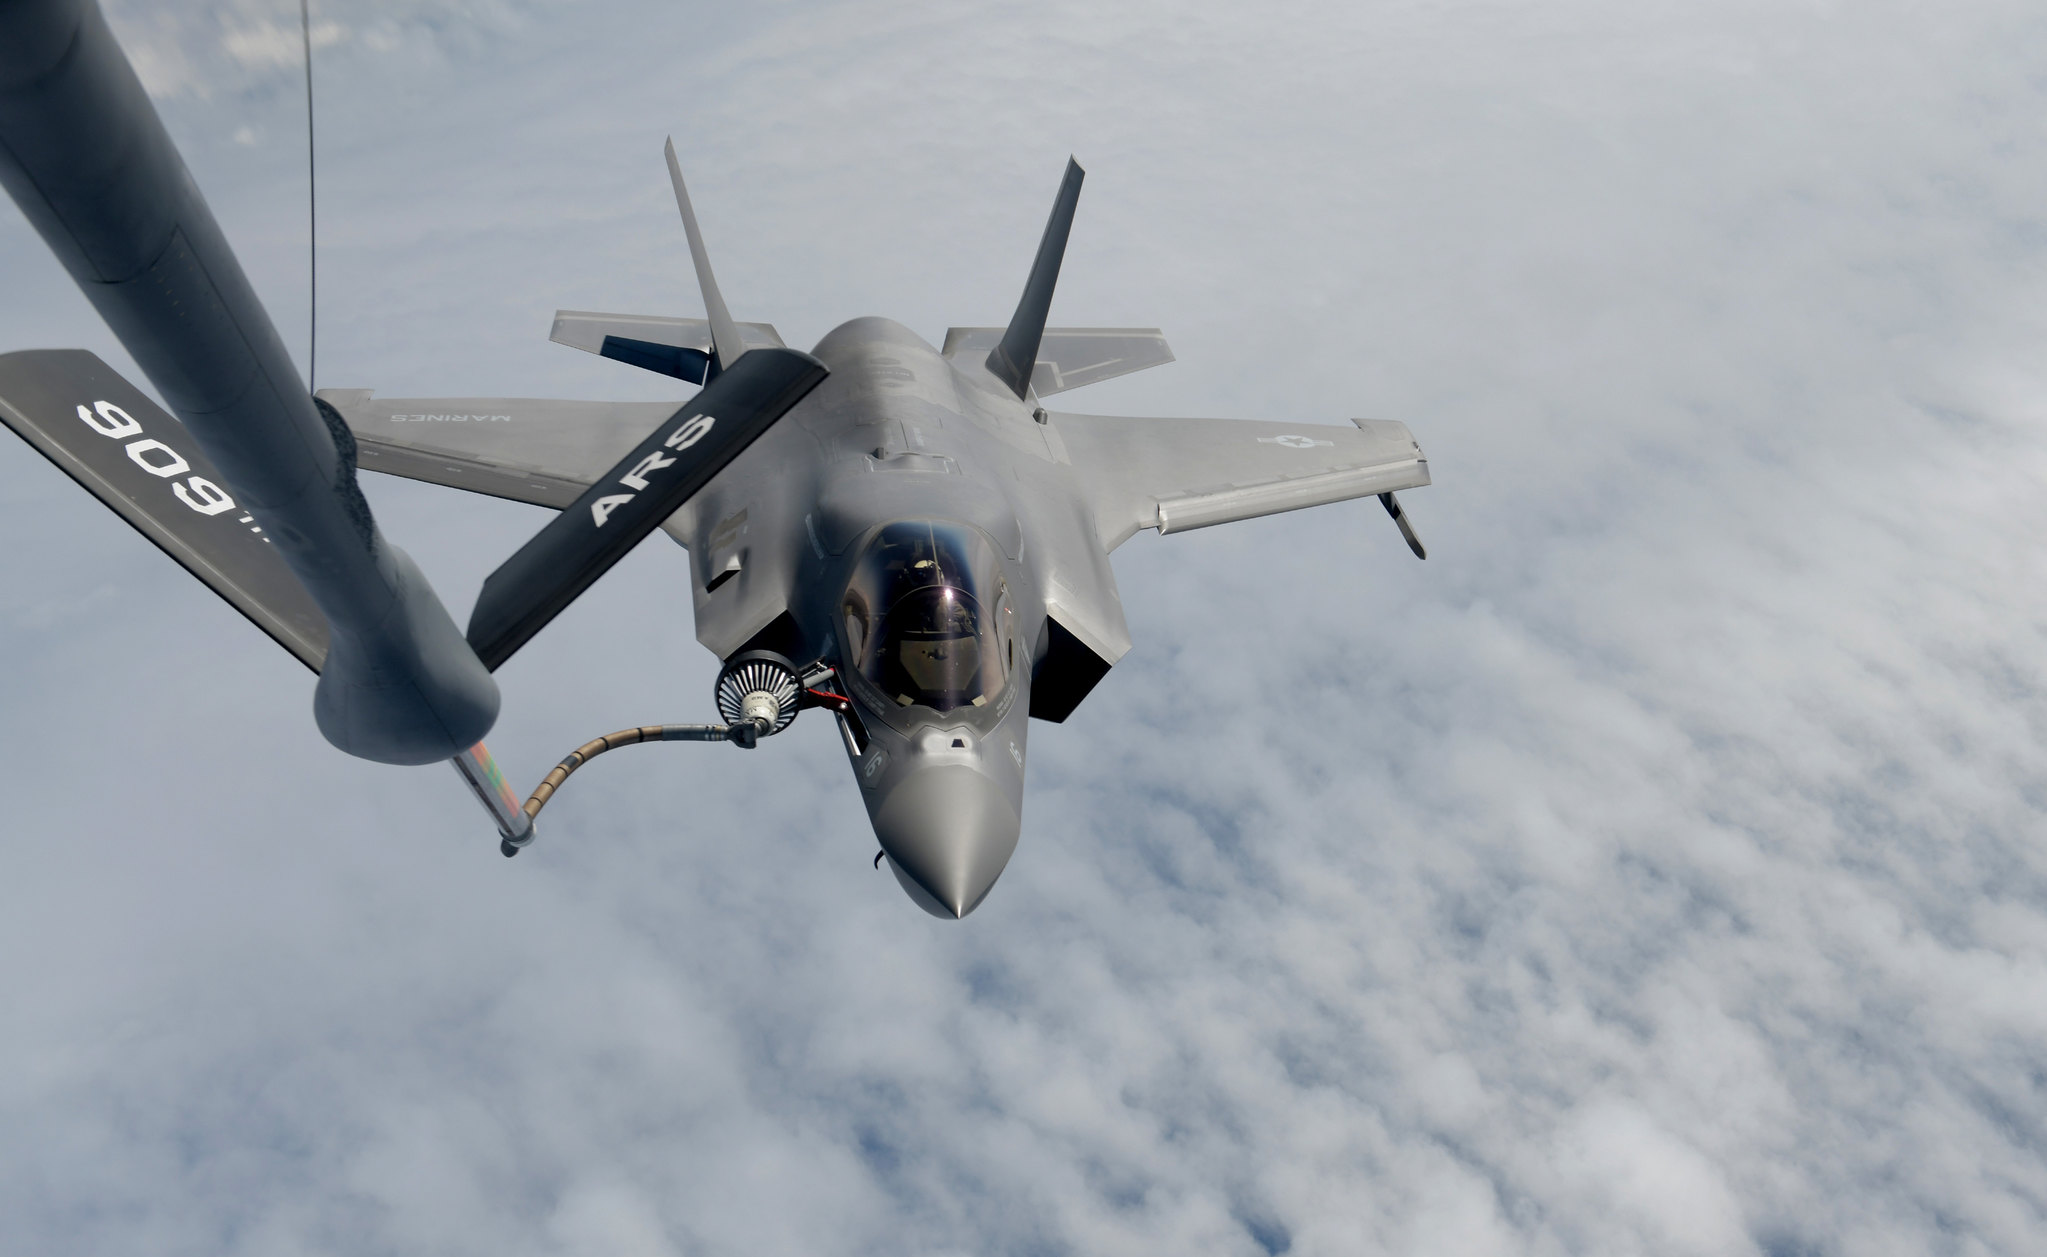 A U.S. Marine Corps F-35B Lightning II from Marine Corps Air Station Iwakuni, Japan, conducts aerial refueling with a KC-135 Stratotanker from Kadena Air Base, Japan, over the Pacific Ocean, April 20, 2021. (Staff Sgt. Daryn Murphy/Air Force)